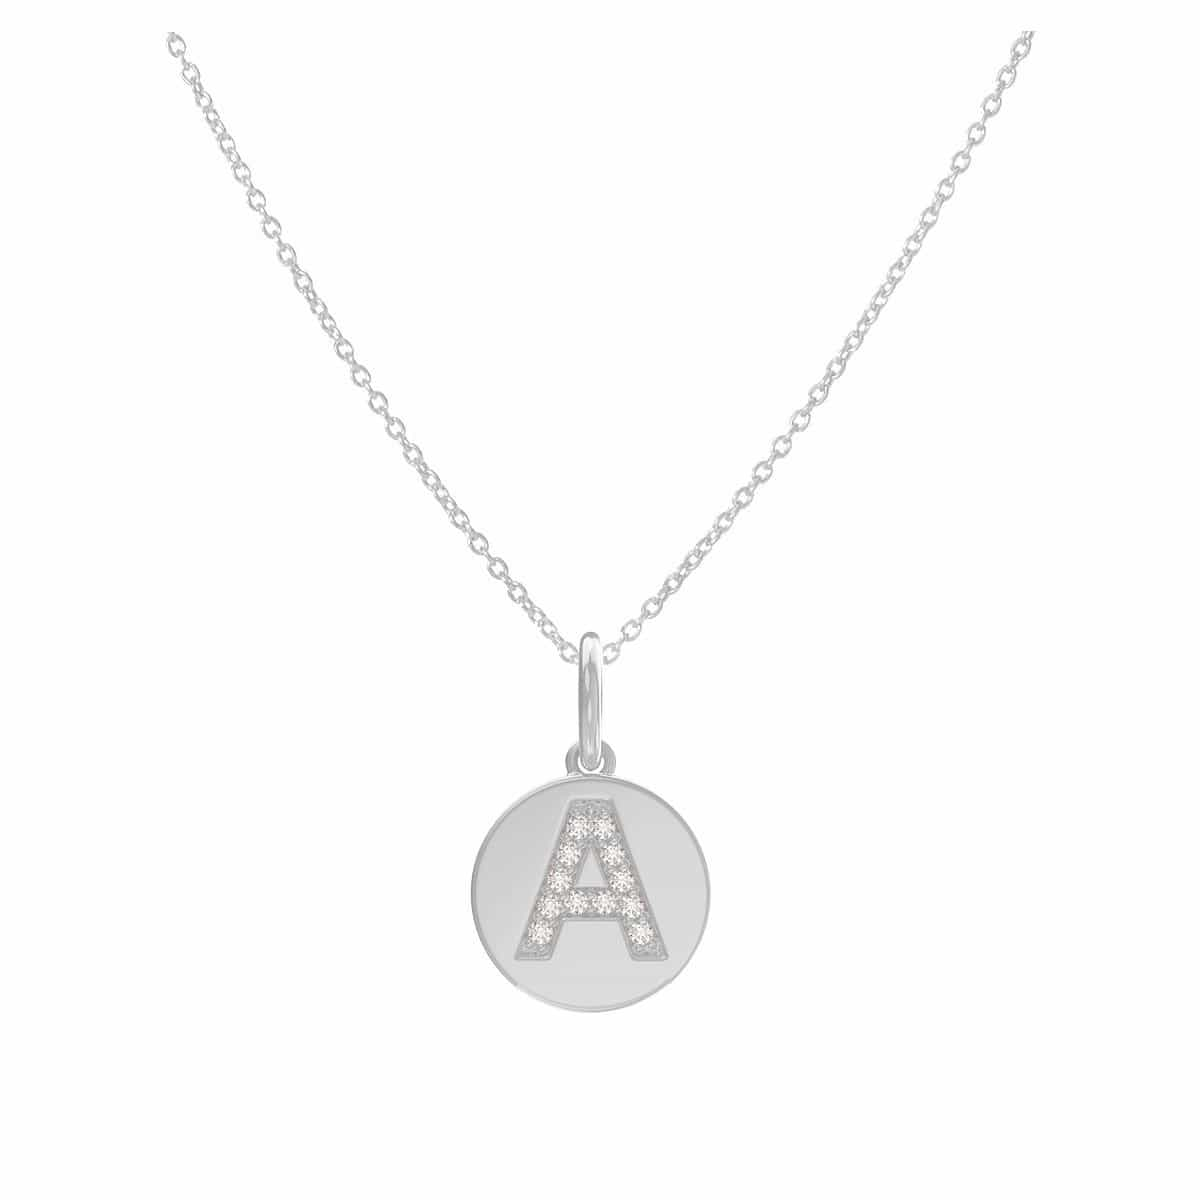 Grand Pave Initial Coin Necklace